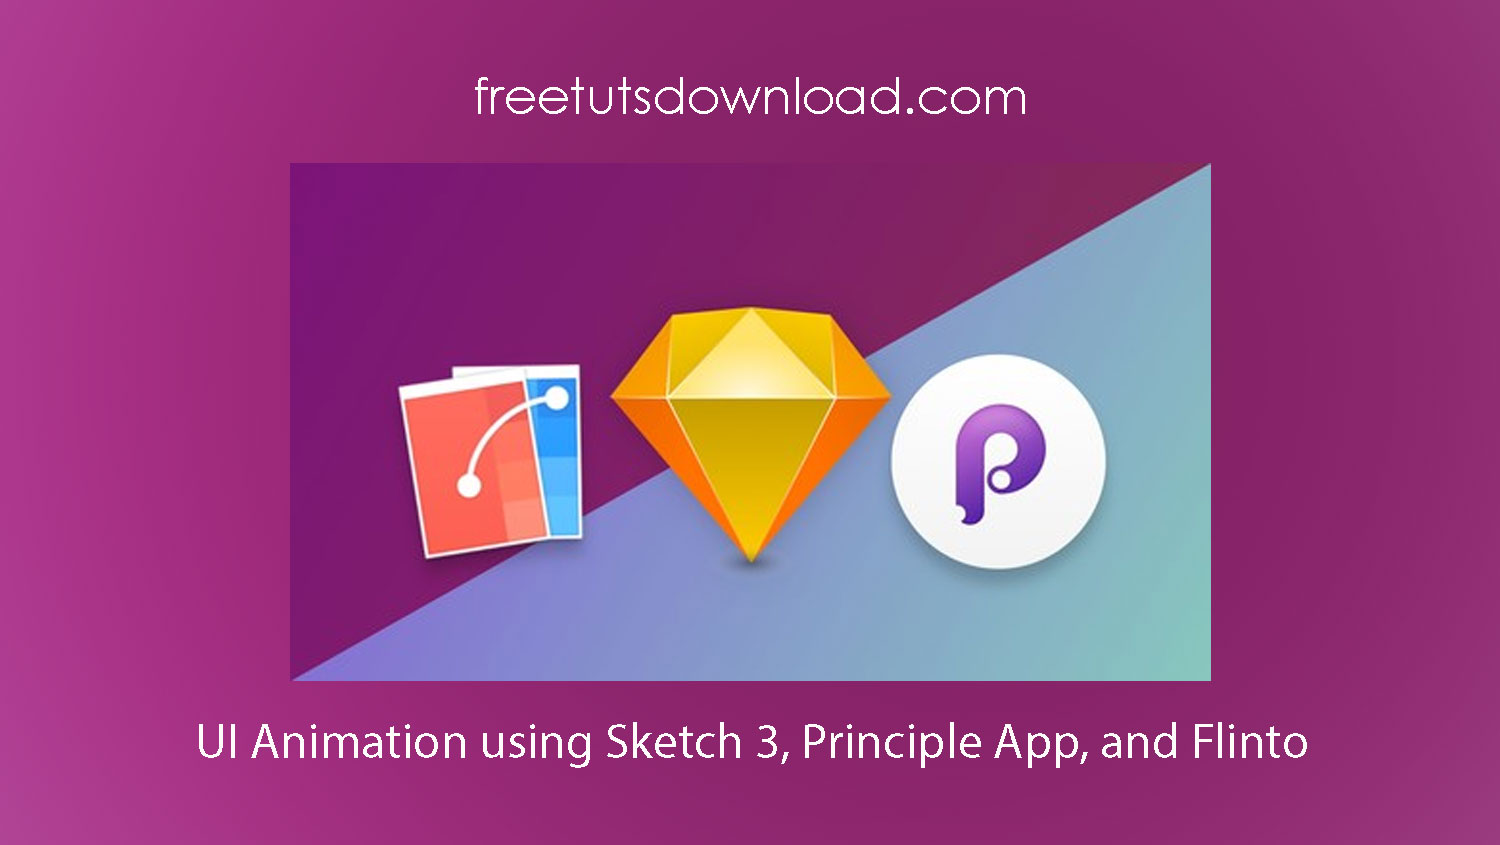 UI Animation using Sketch 3, Principle App, and Flinto